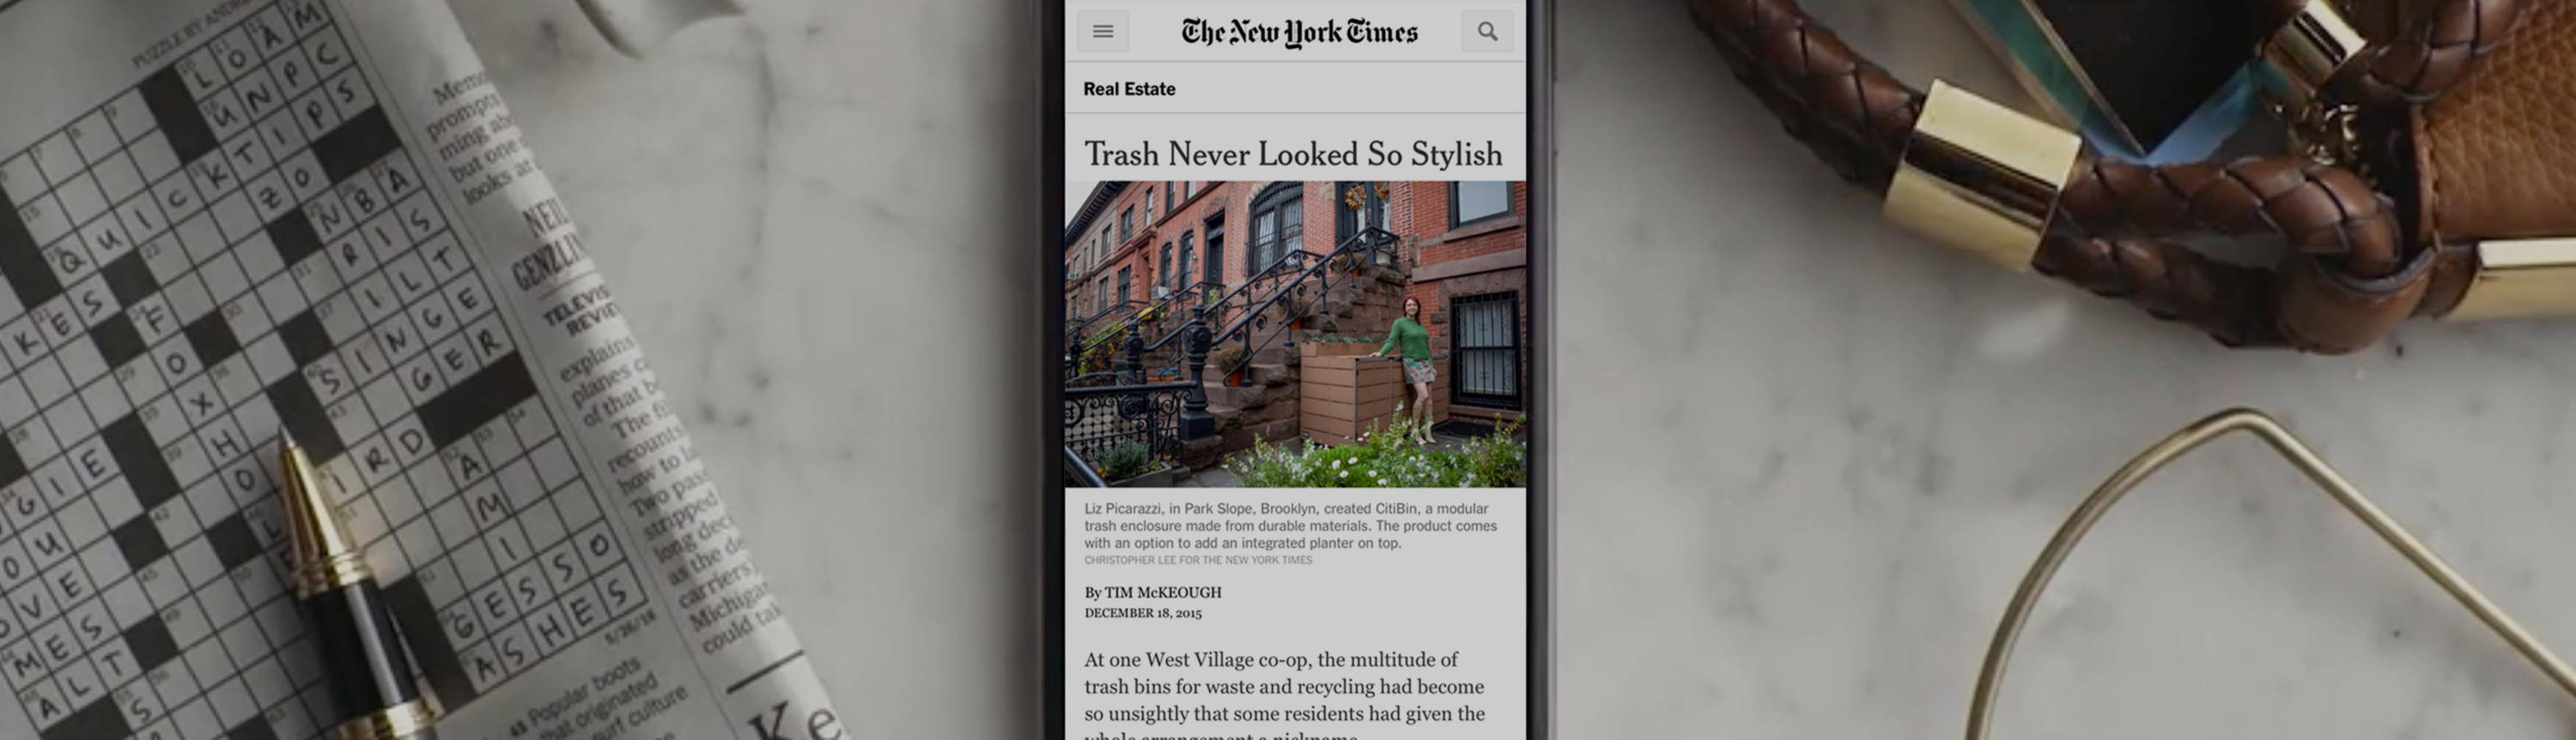 citibin trash garbage enclosure parcel bin new york times nyt